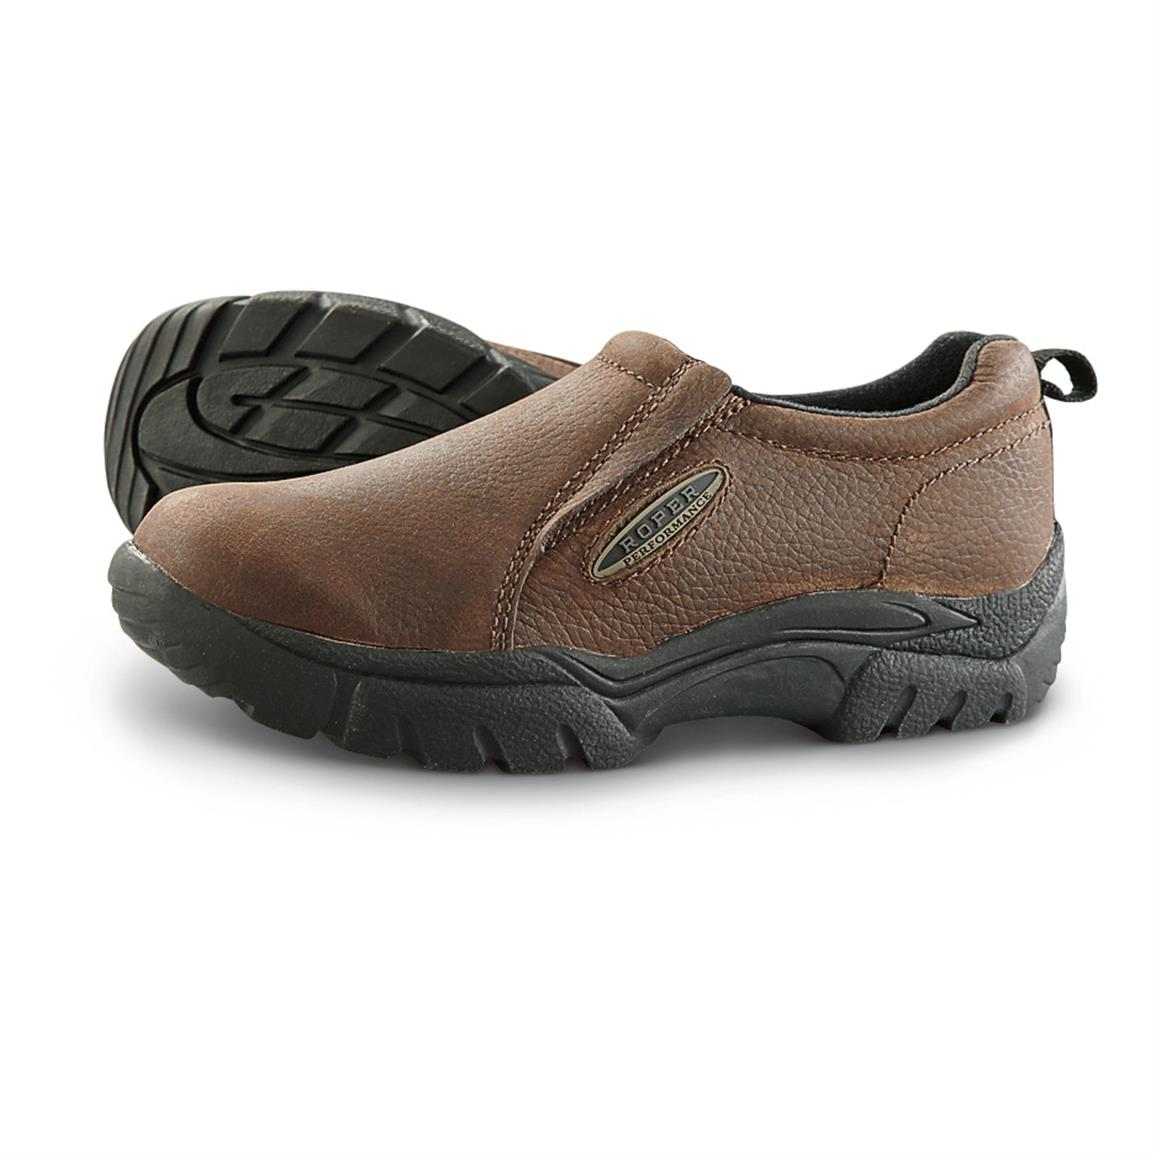 Womens Shoes From slip ons to Mary Janes we have a great selection of women's comfortable and affordable shoes here at Pavers. Each shoe offers comfort and style in a great range of width fittings, perfect for completing your look!